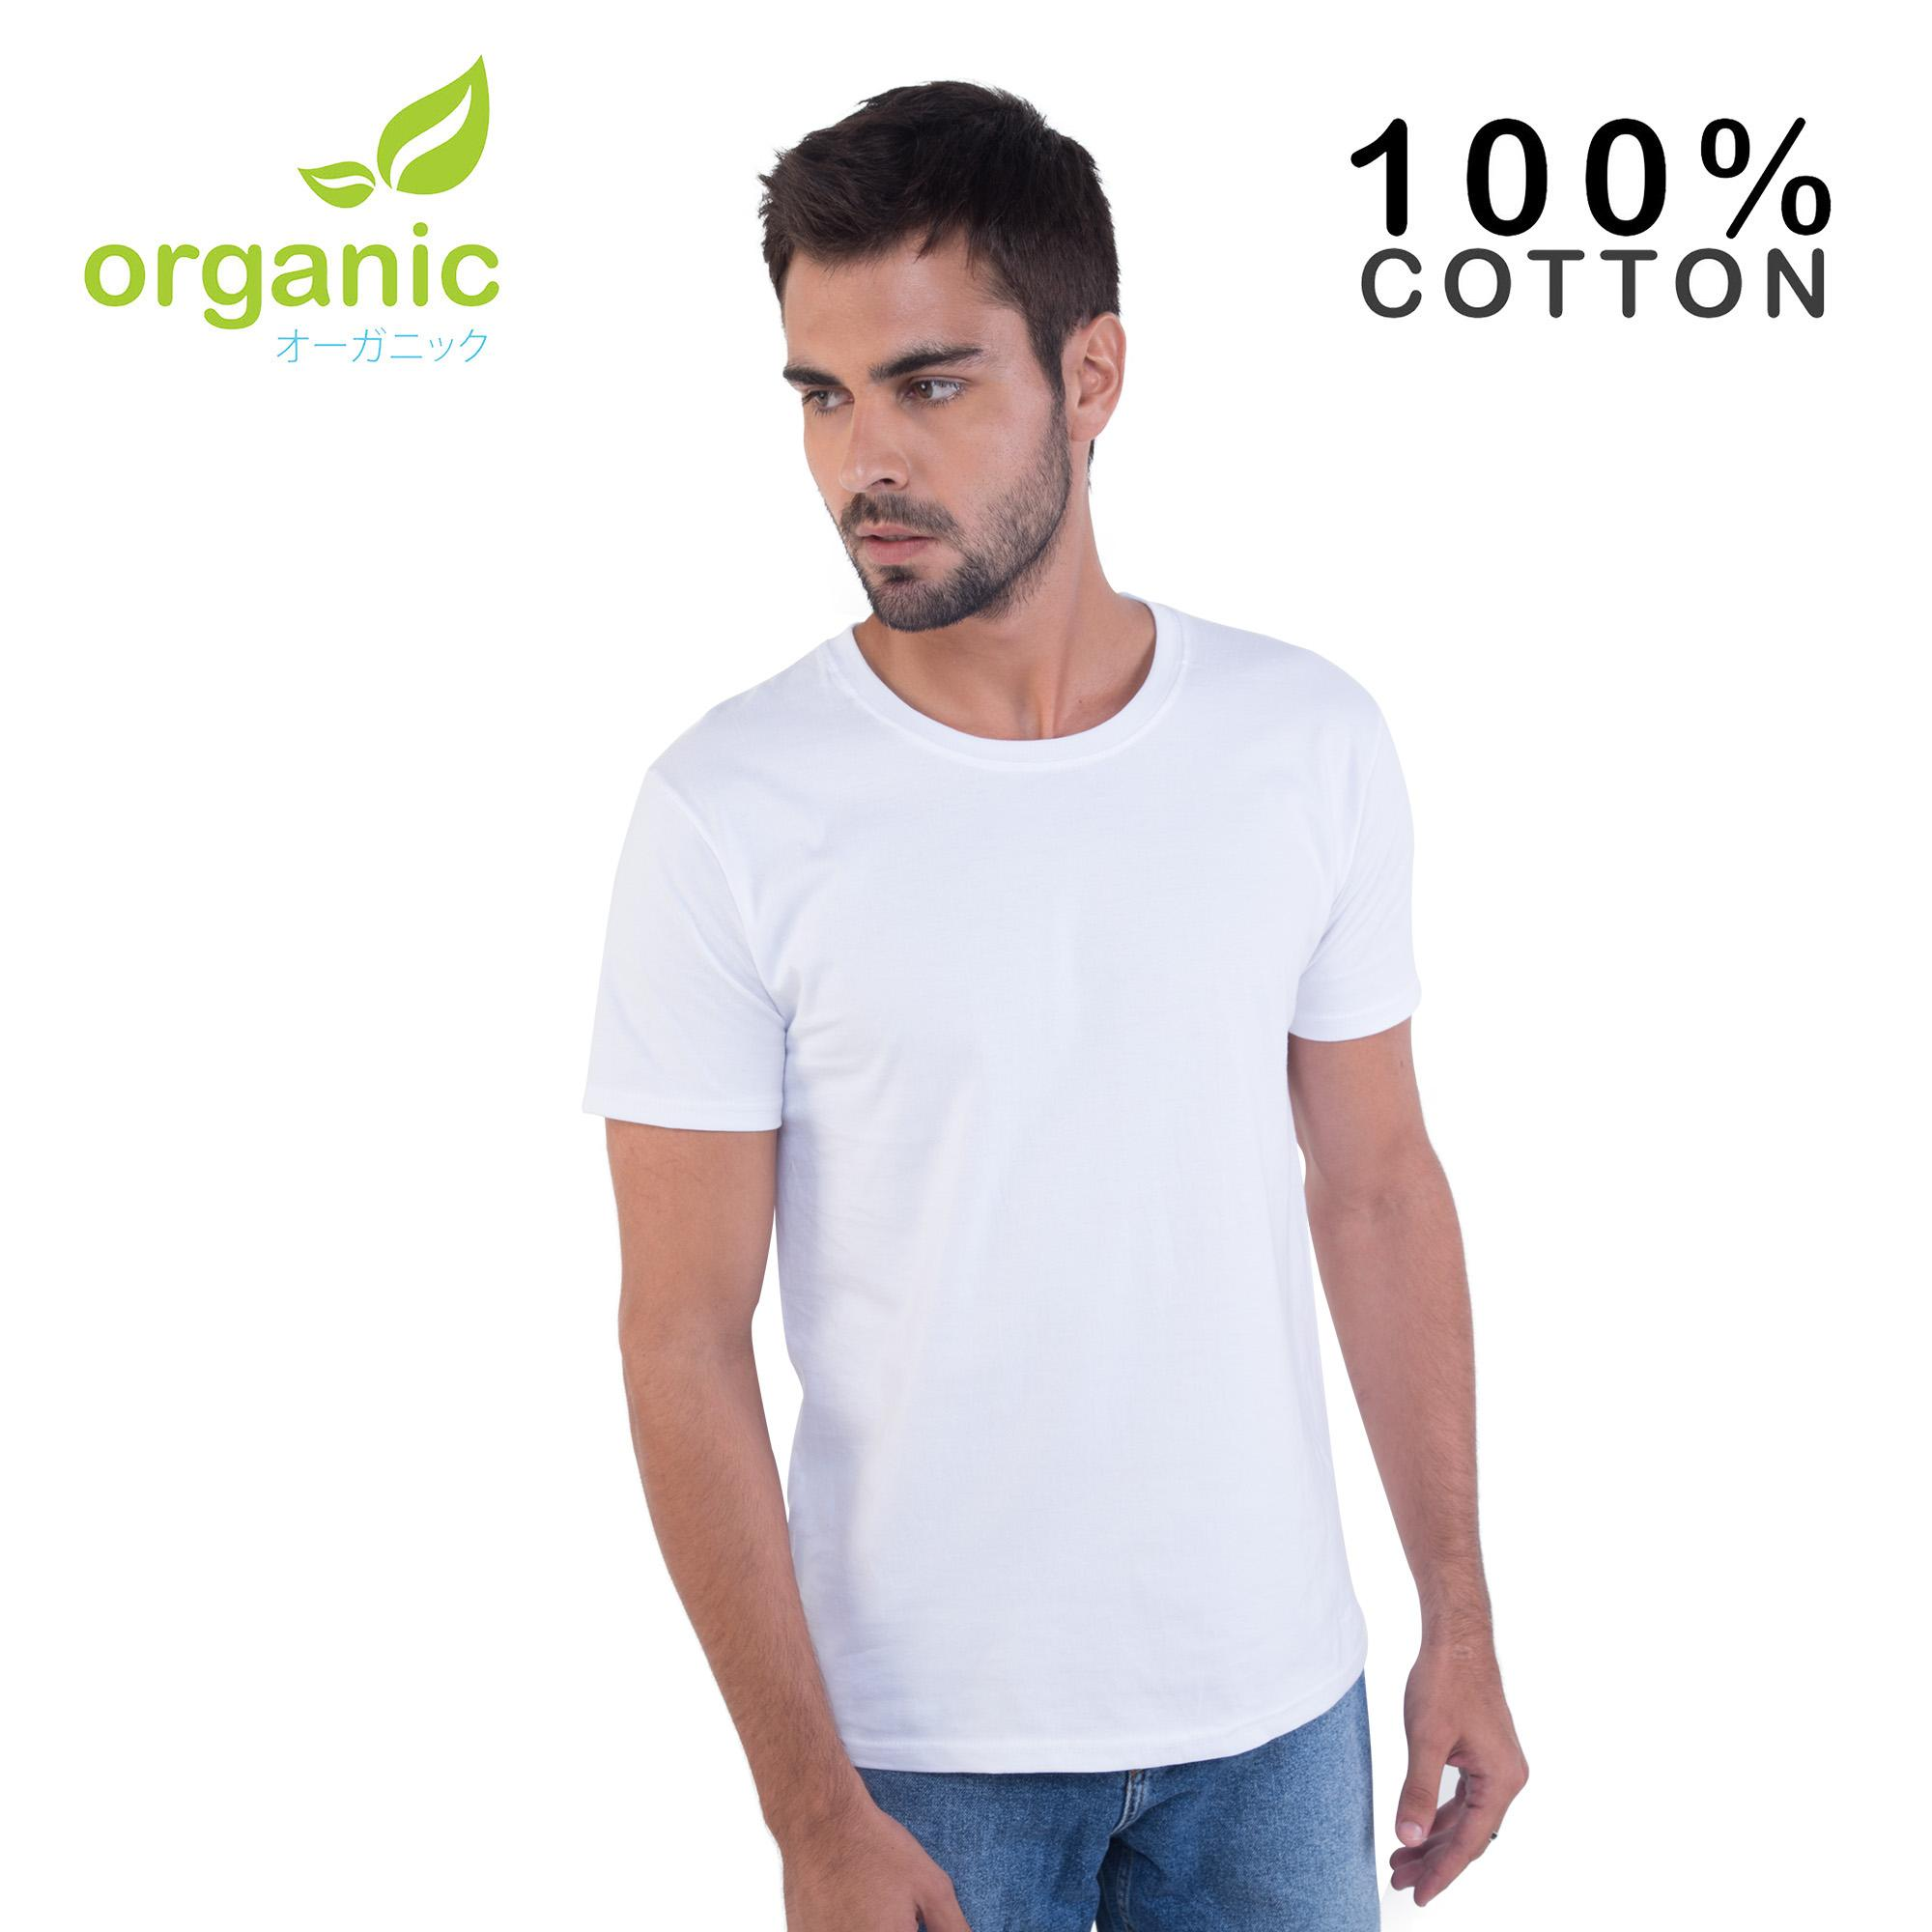 bef0e243714b Organic Mens 100% Cotton Round neck Tees t shirt tshirt shirts tshirts tee  tops top